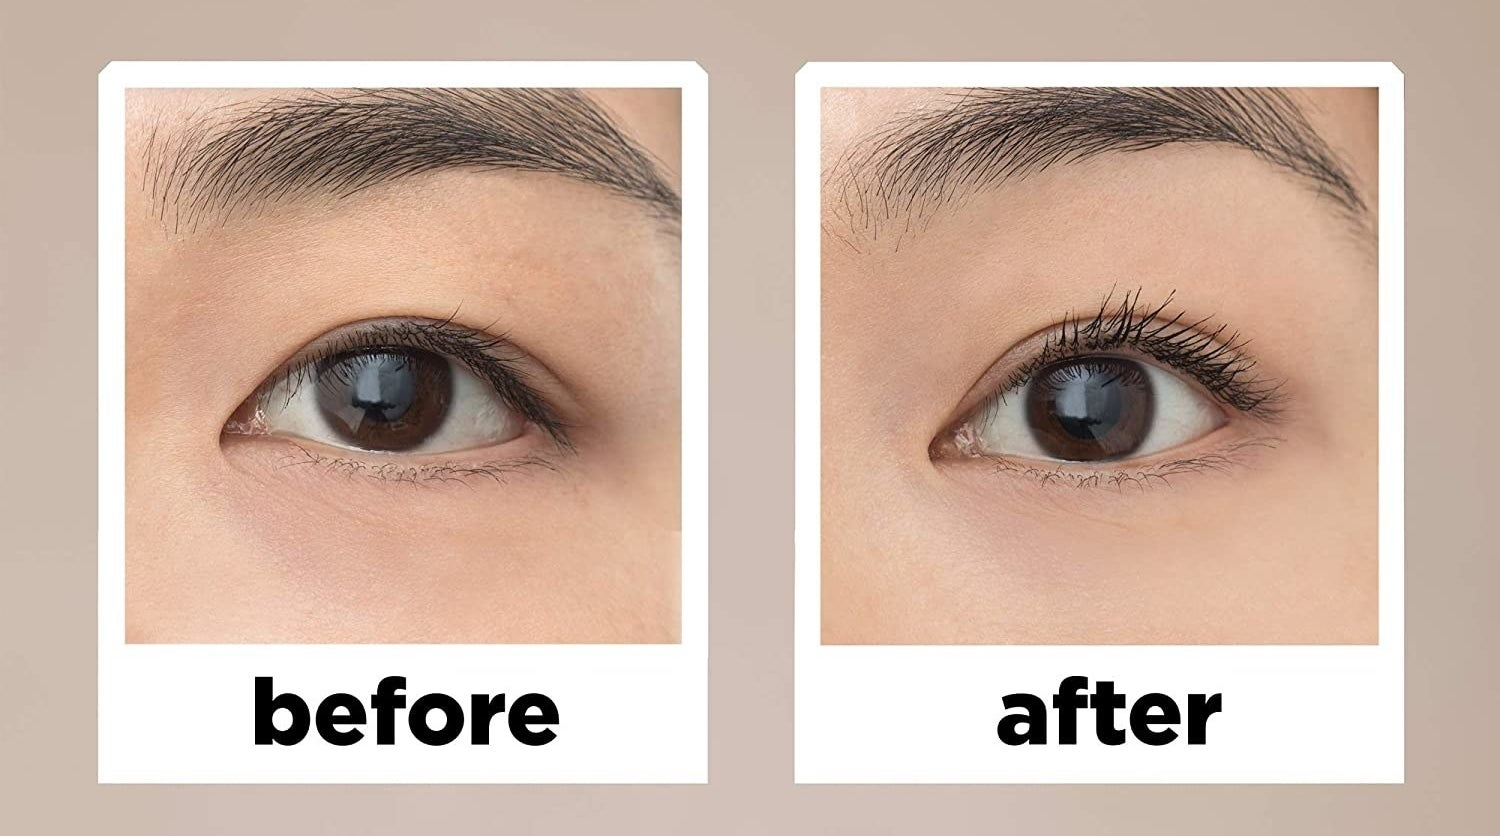 a before and after of the mascara